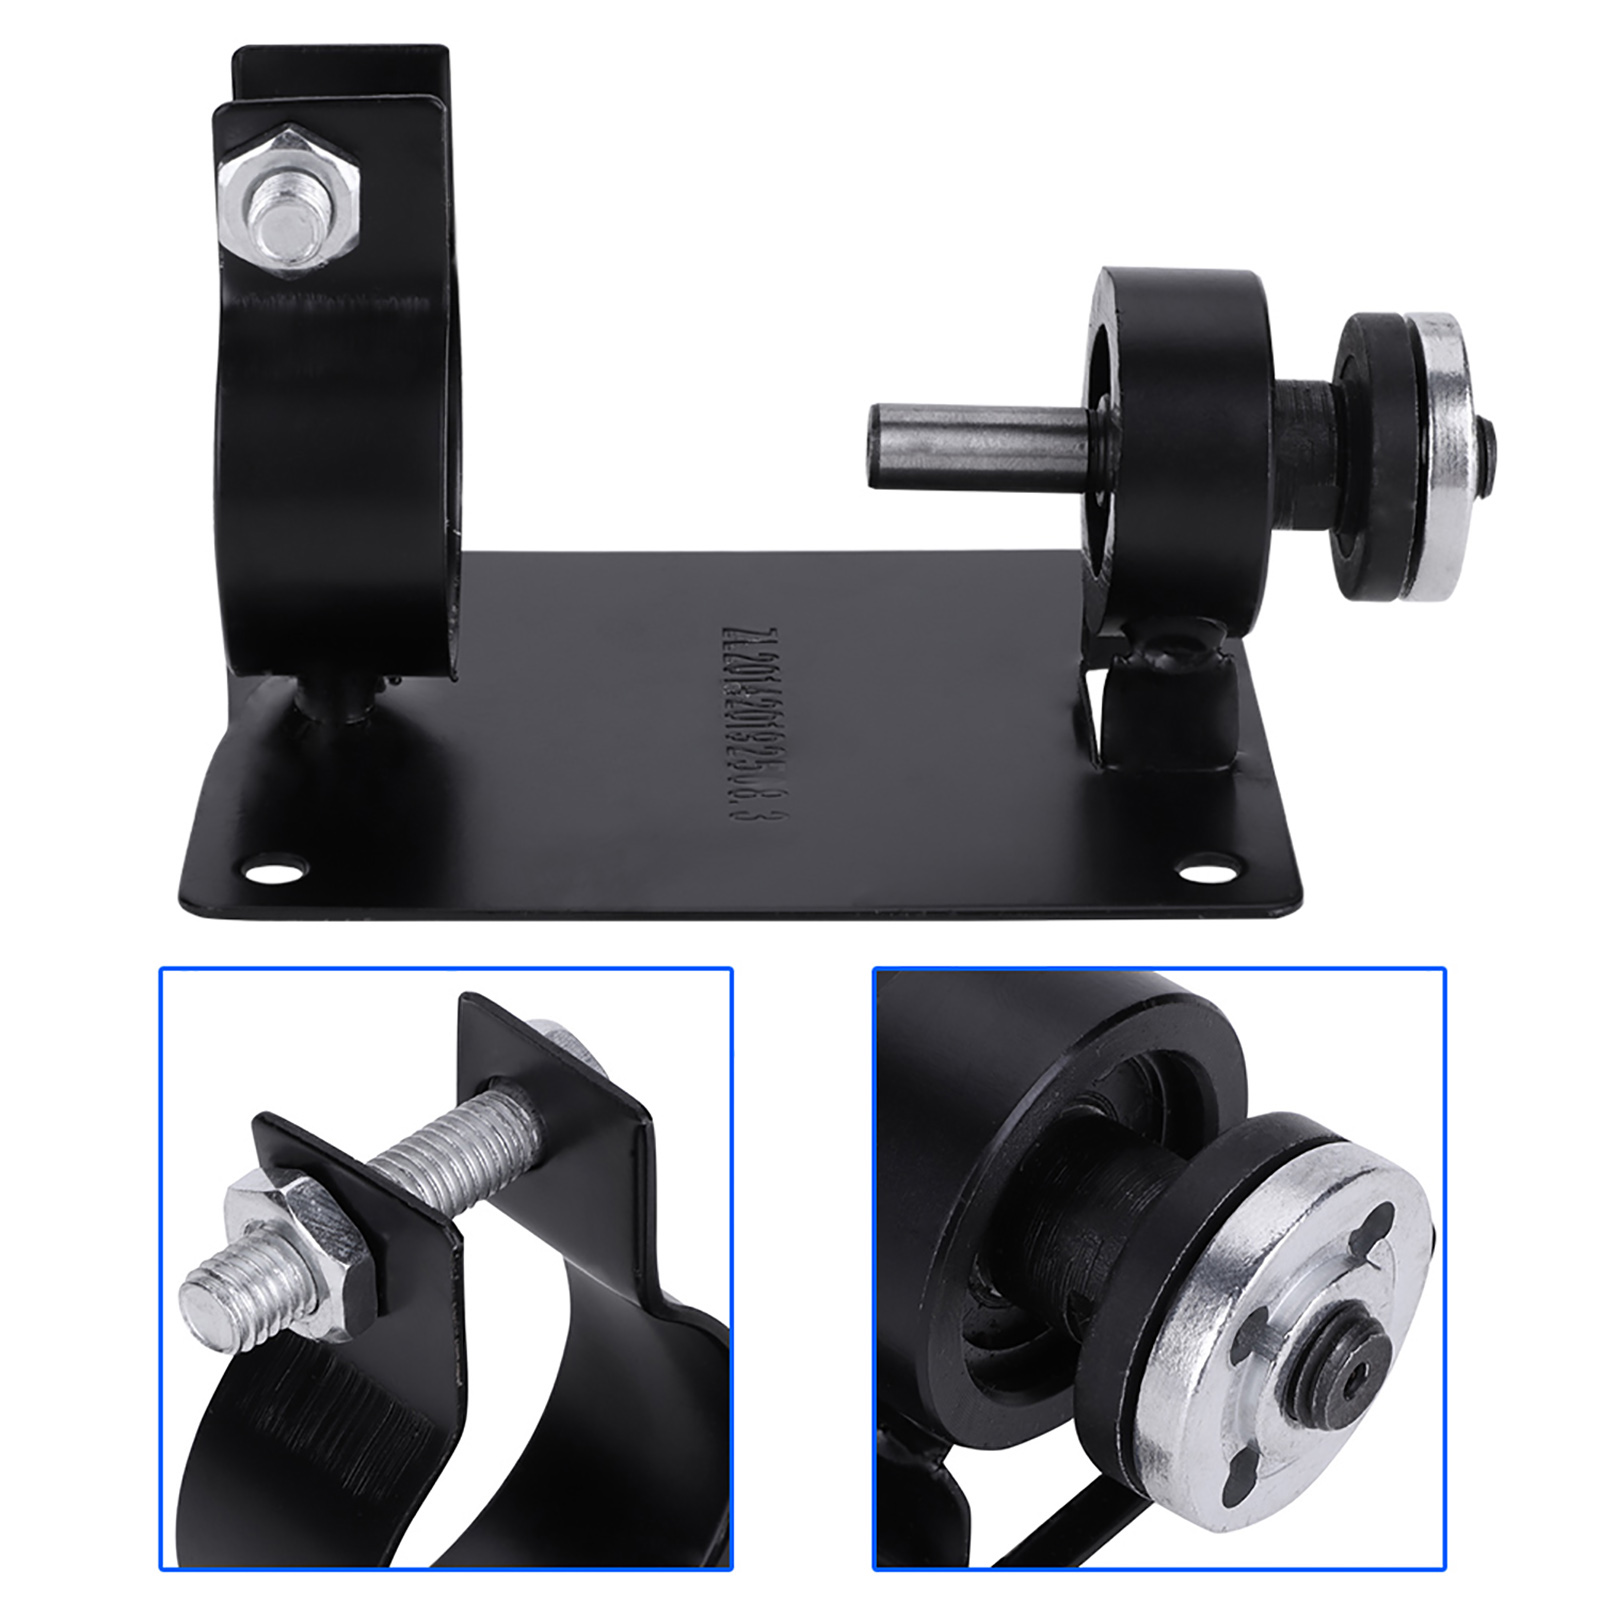 Electric-Drill-Cutting-Stand-Holder-Seat-Bracket-for-